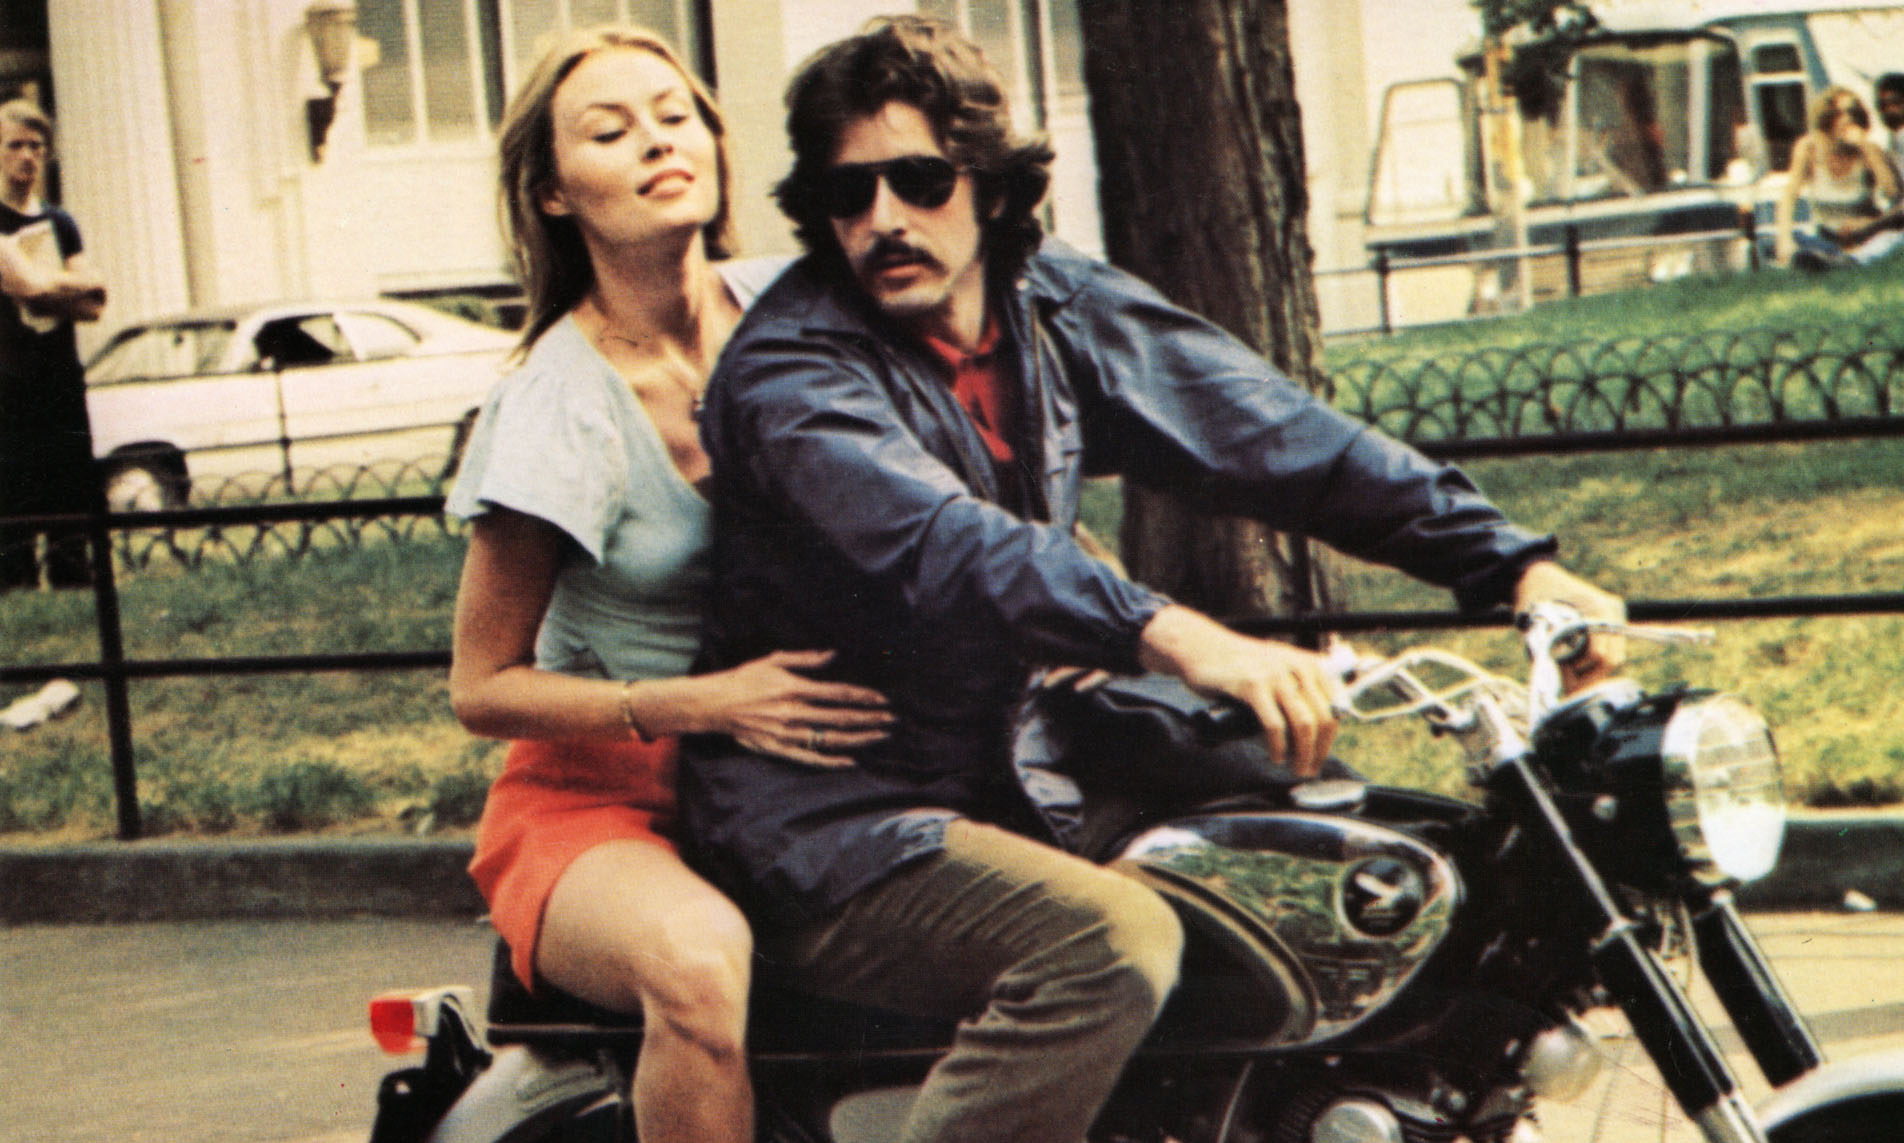 serpico new york police corruption classic shoots from